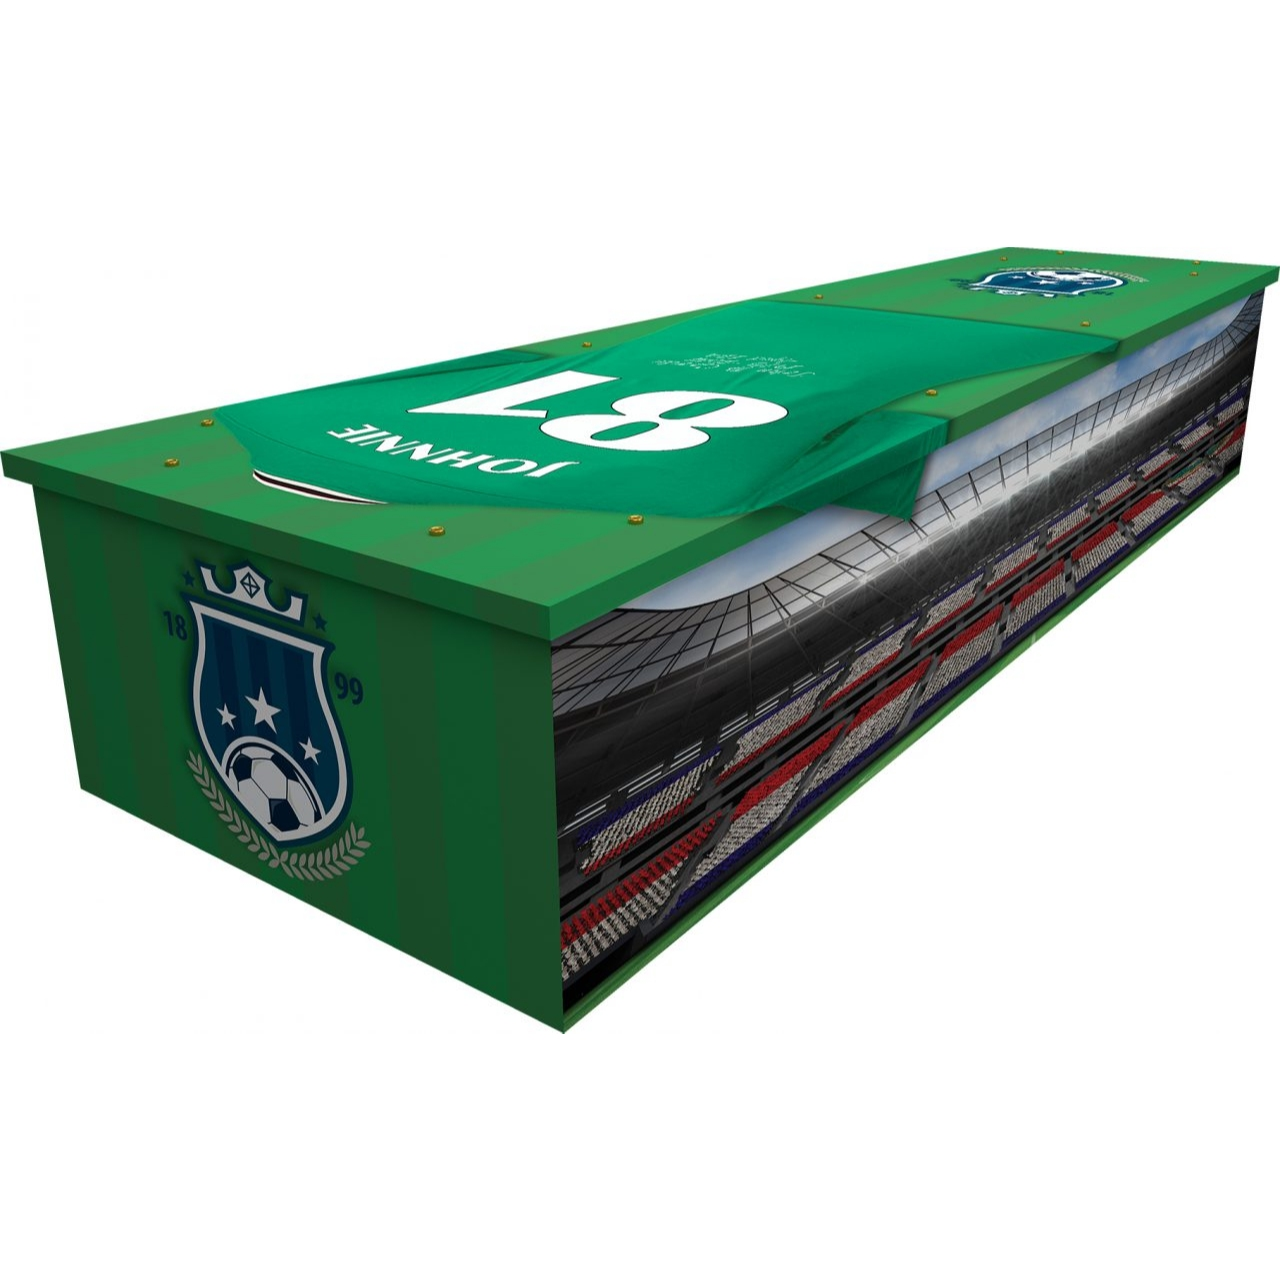 Football Club Cardboard Coffin